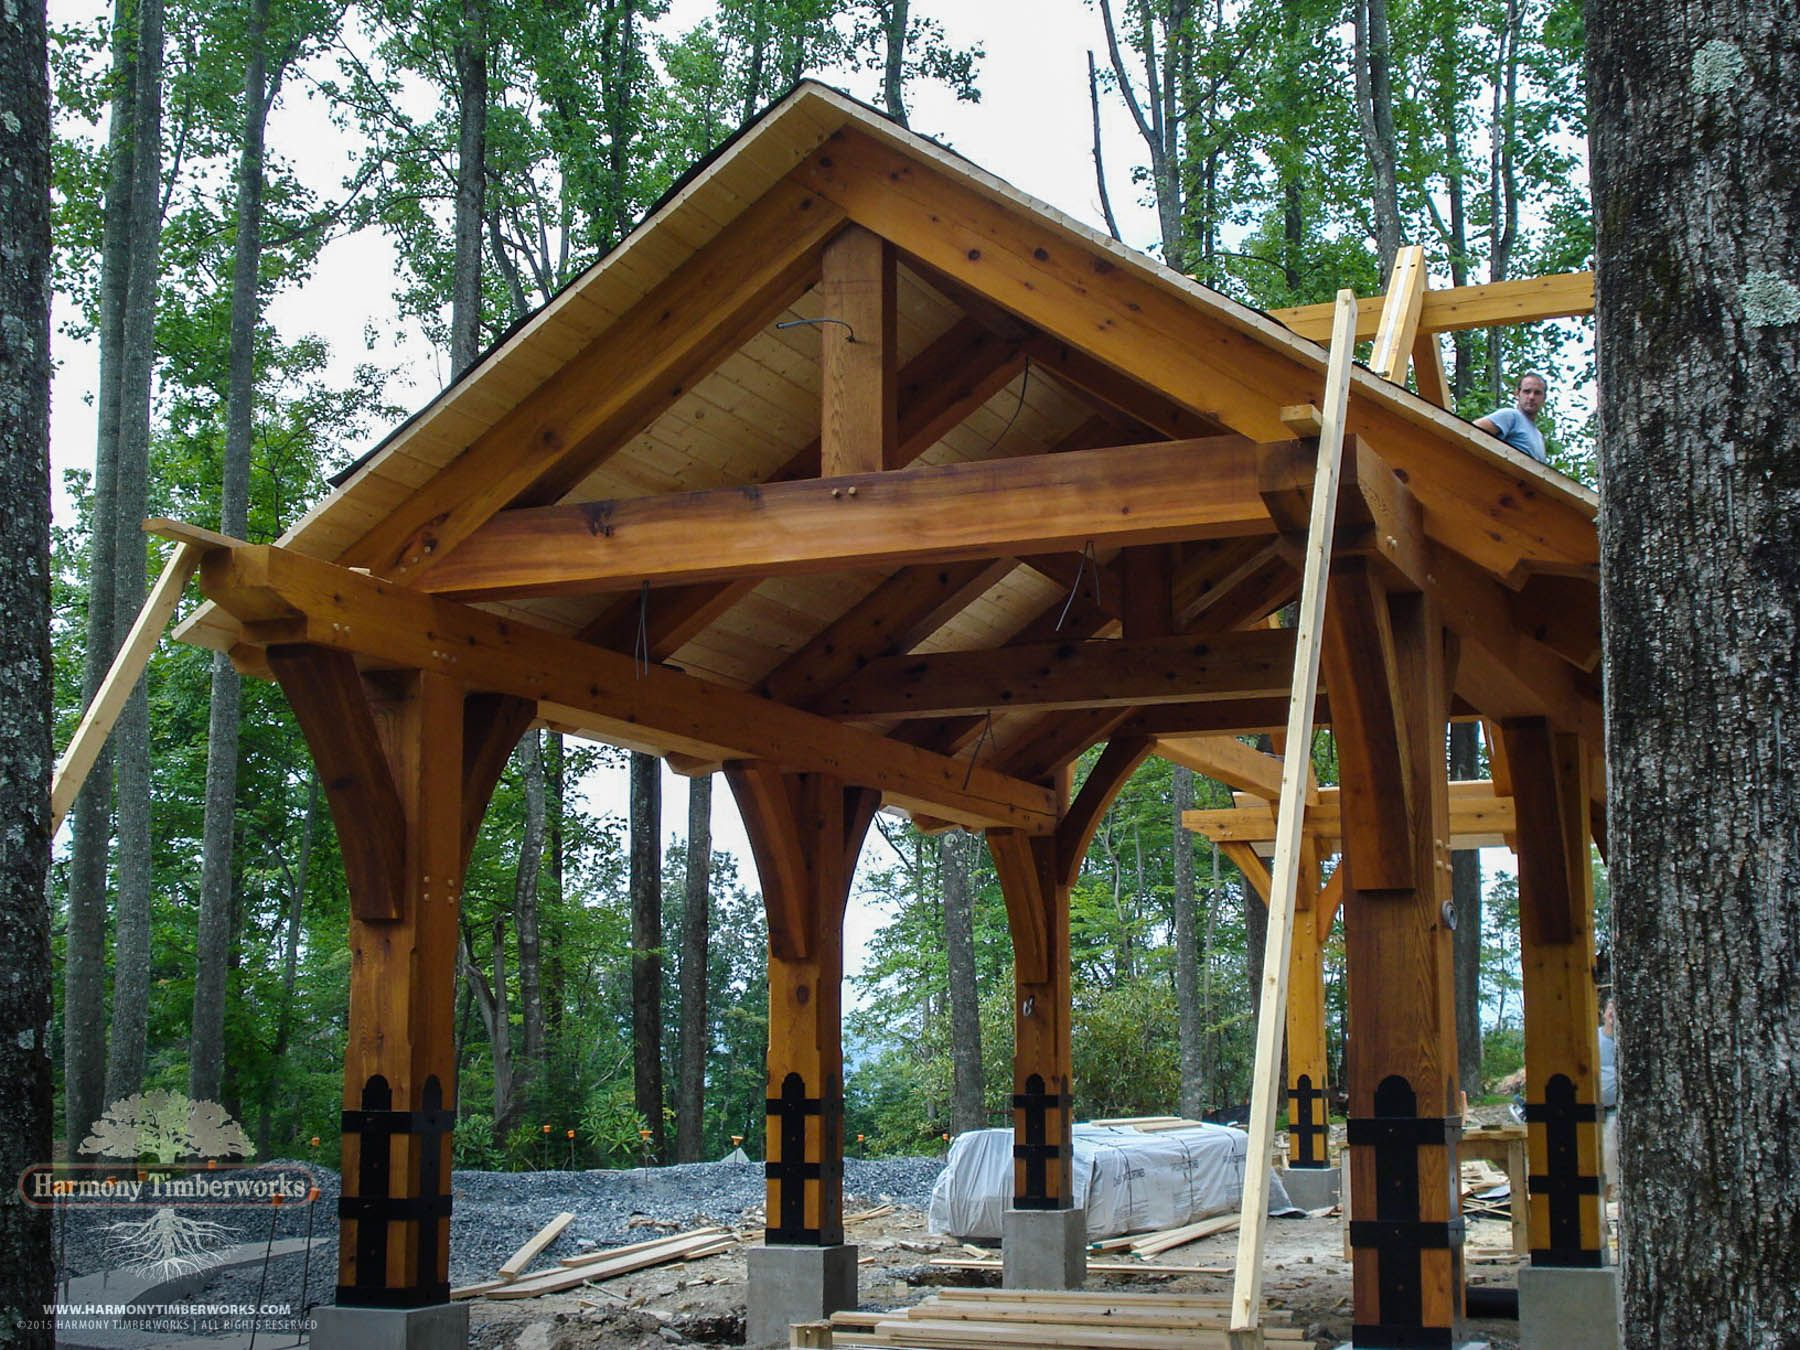 Kingpost Truss Open Timber Frame Pavilion For The Home